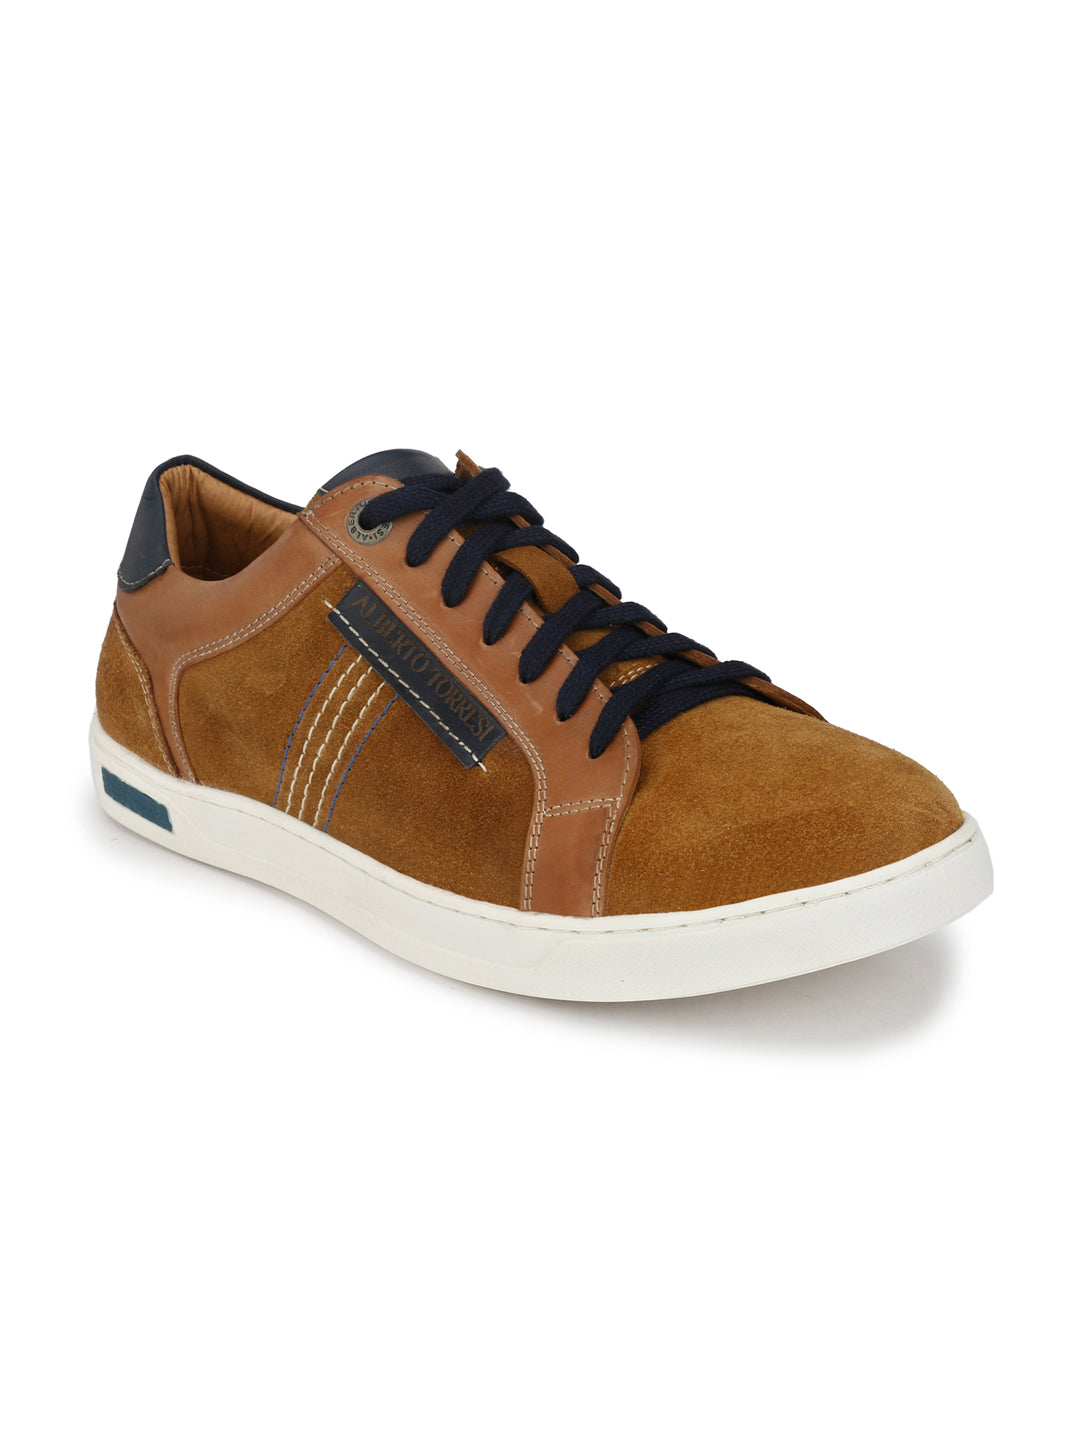 Alberto Torresi Ludwig LION+TAN+BLUE Casual Shoe